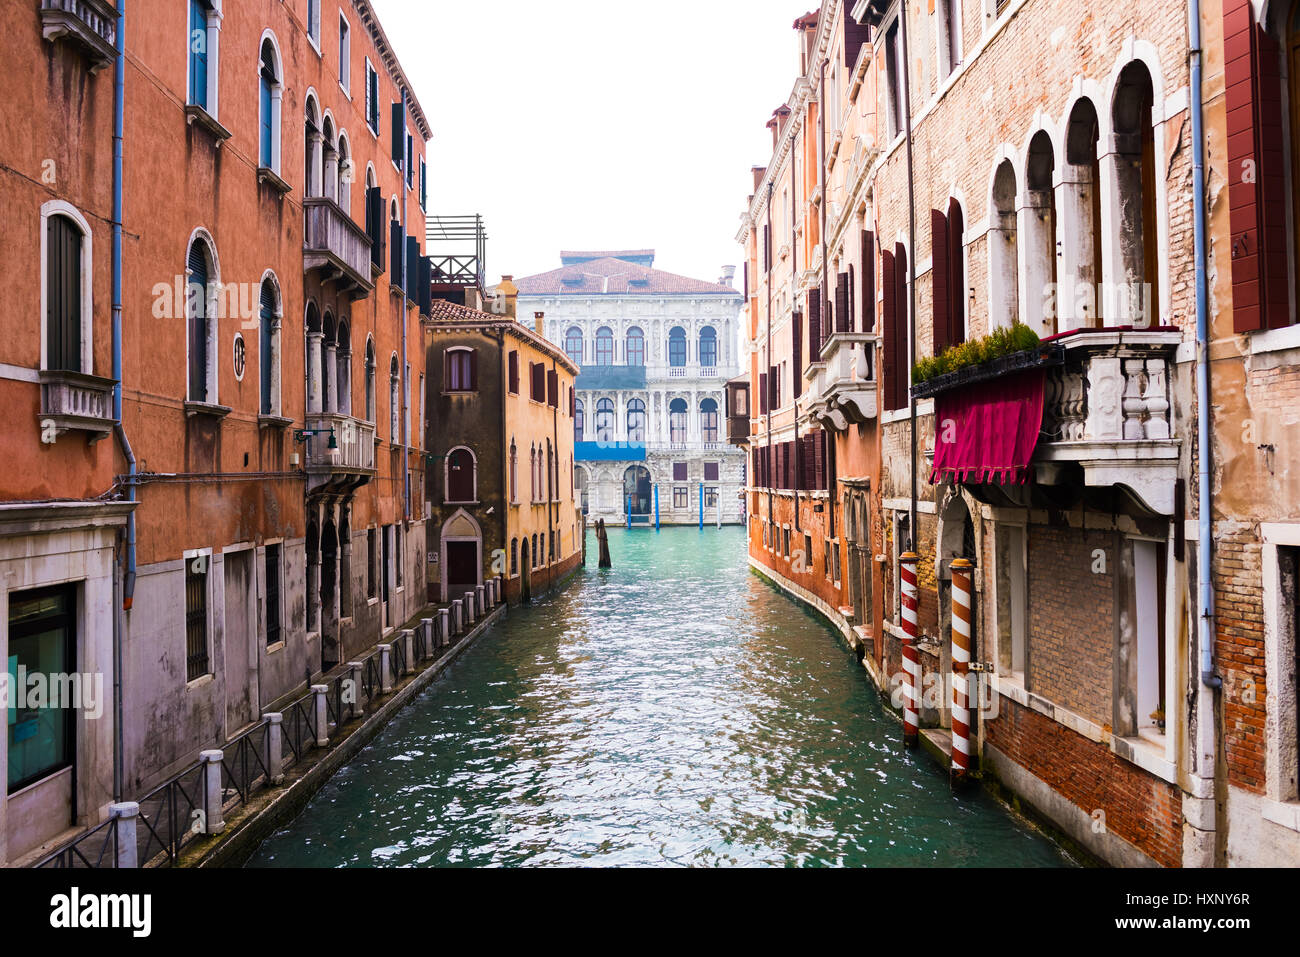 Water Canal And Venetian Buildings In Its Typical